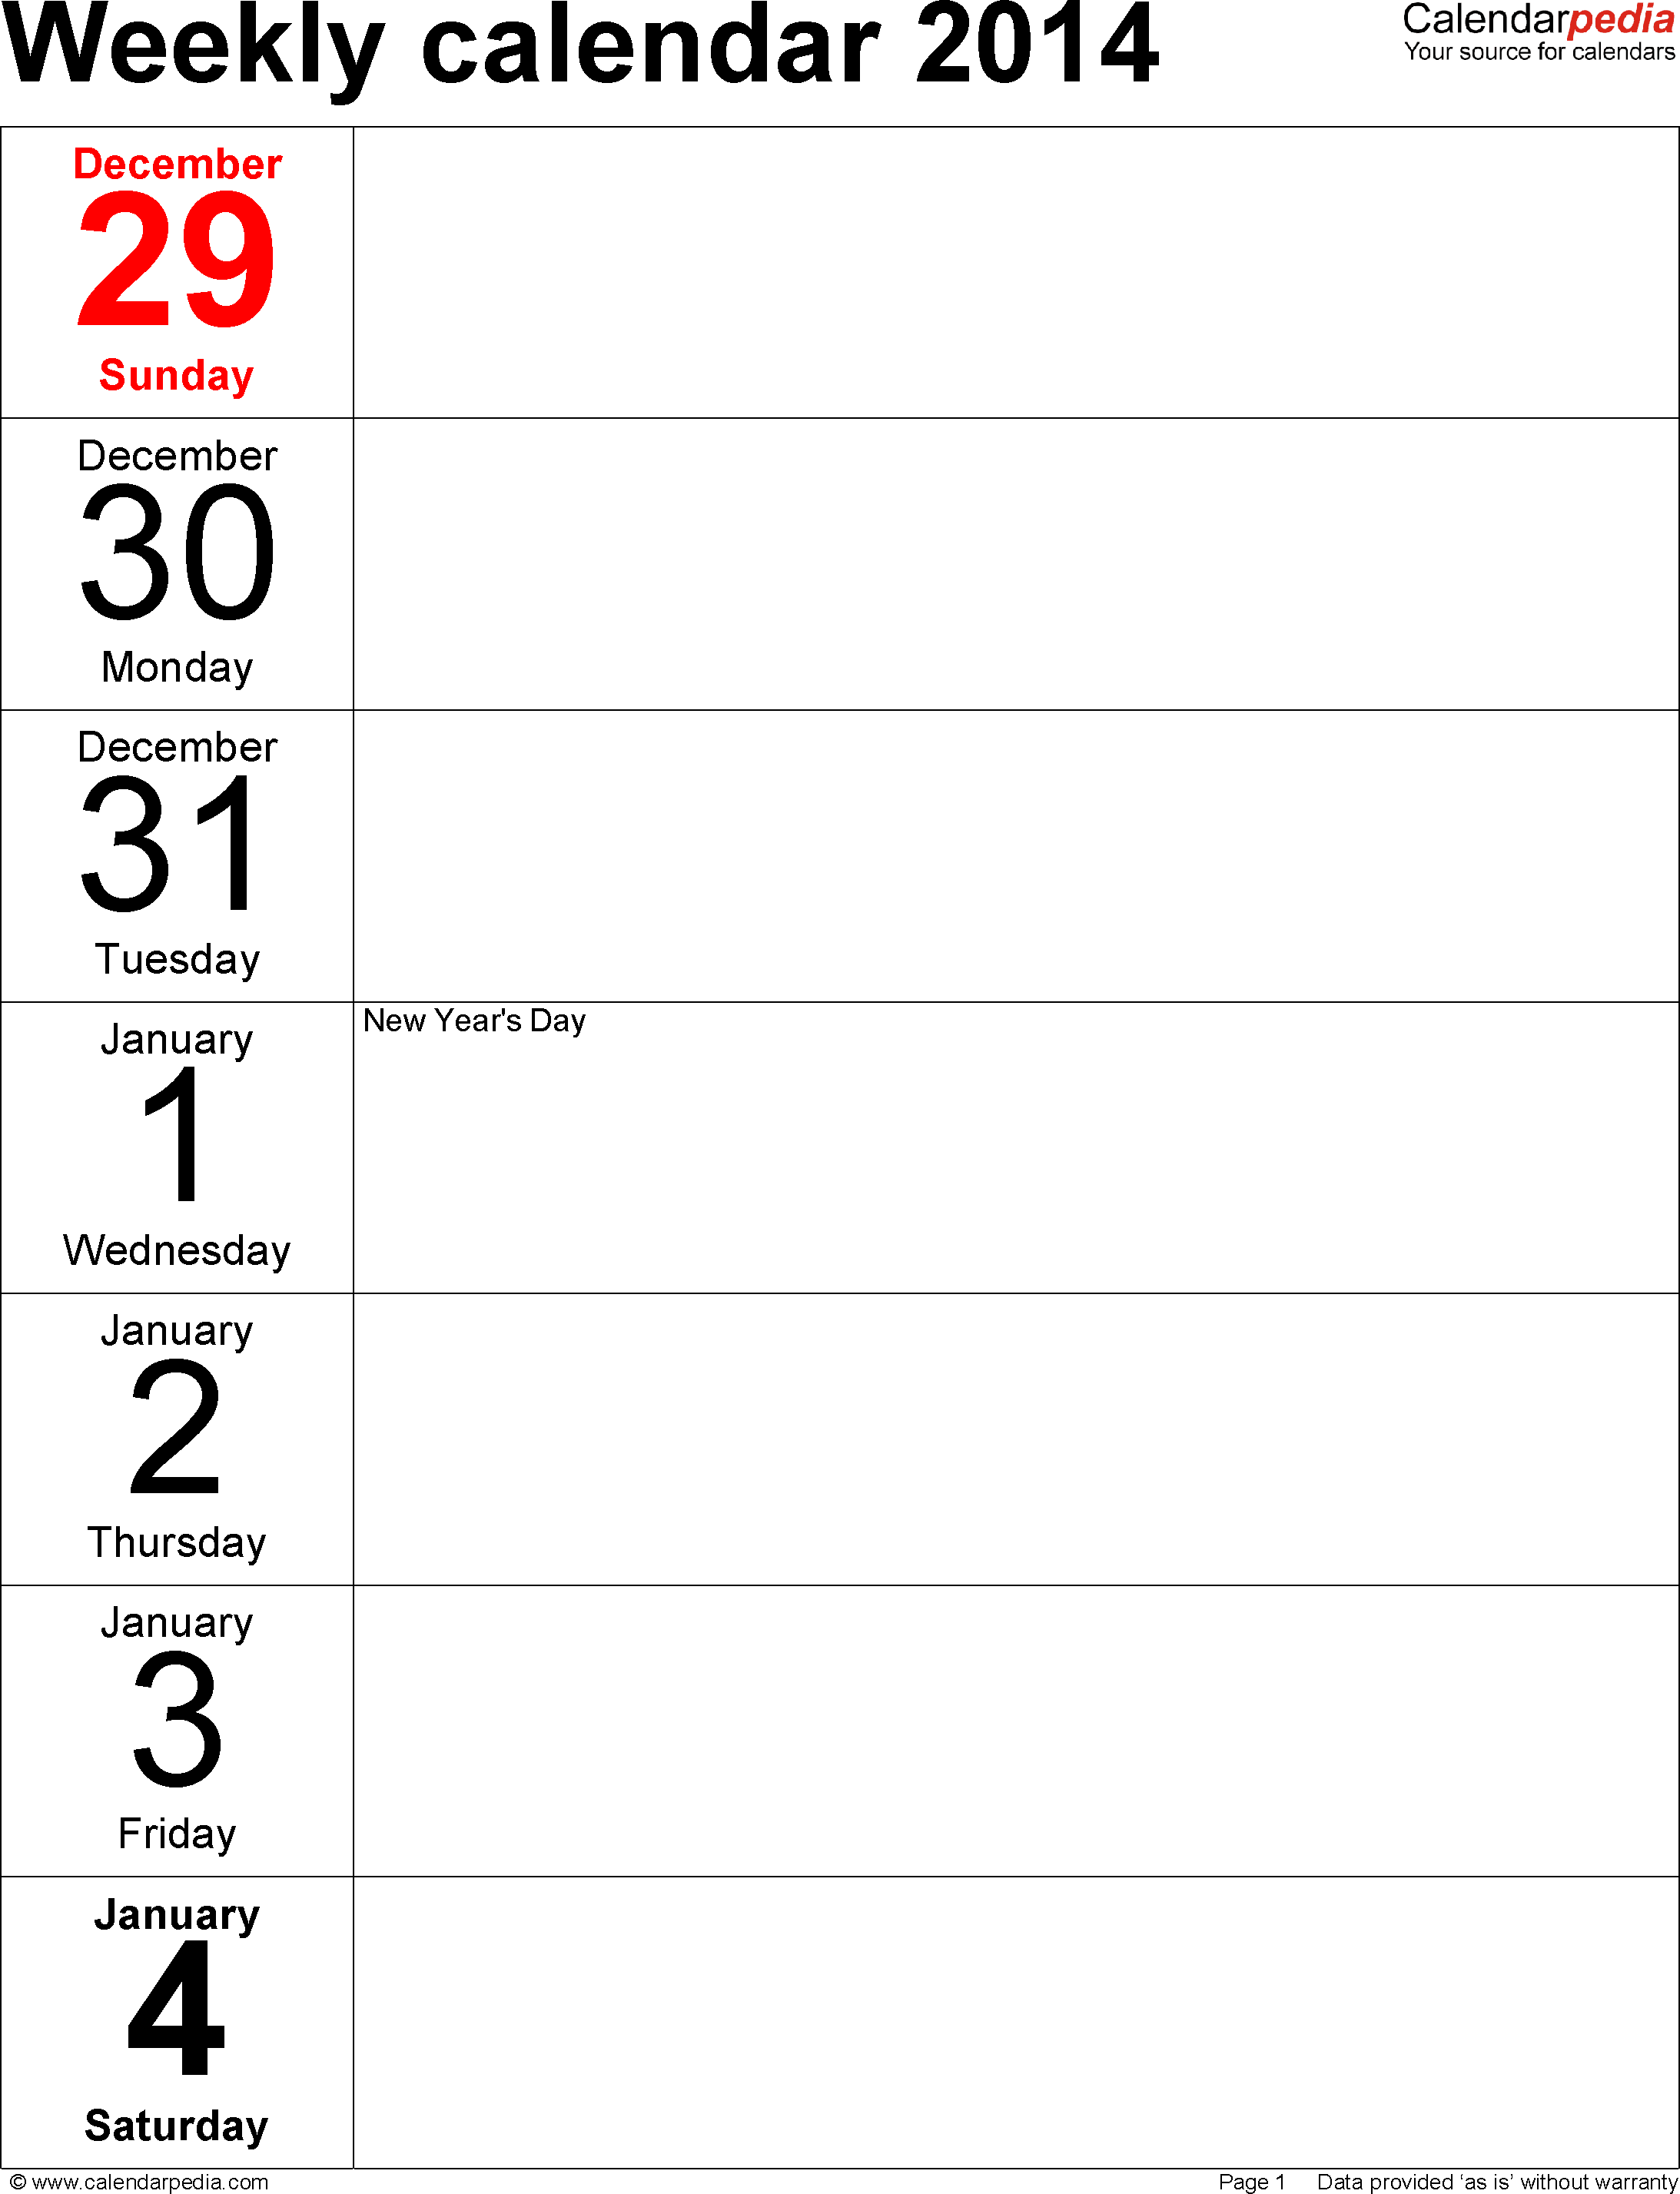 Weekly calendar 2014: template for Word version 4, portrait, 53 pages, days vertically, great for a weekly diary